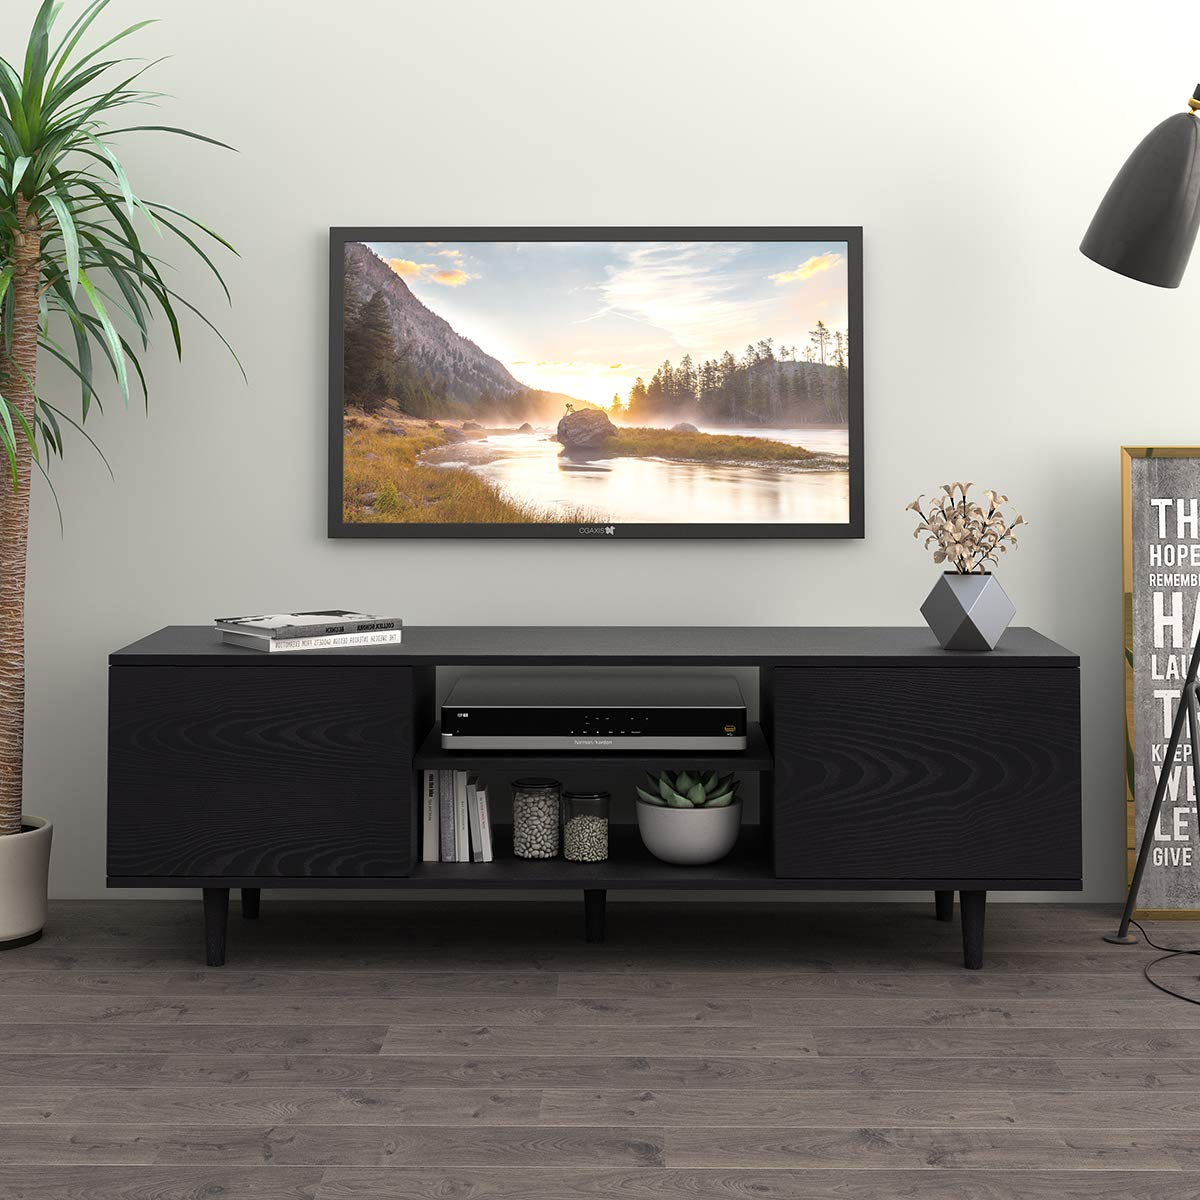 WLIVE Mid-Century Modern TV Stand for 55 TV in Living Room Entertainment Center